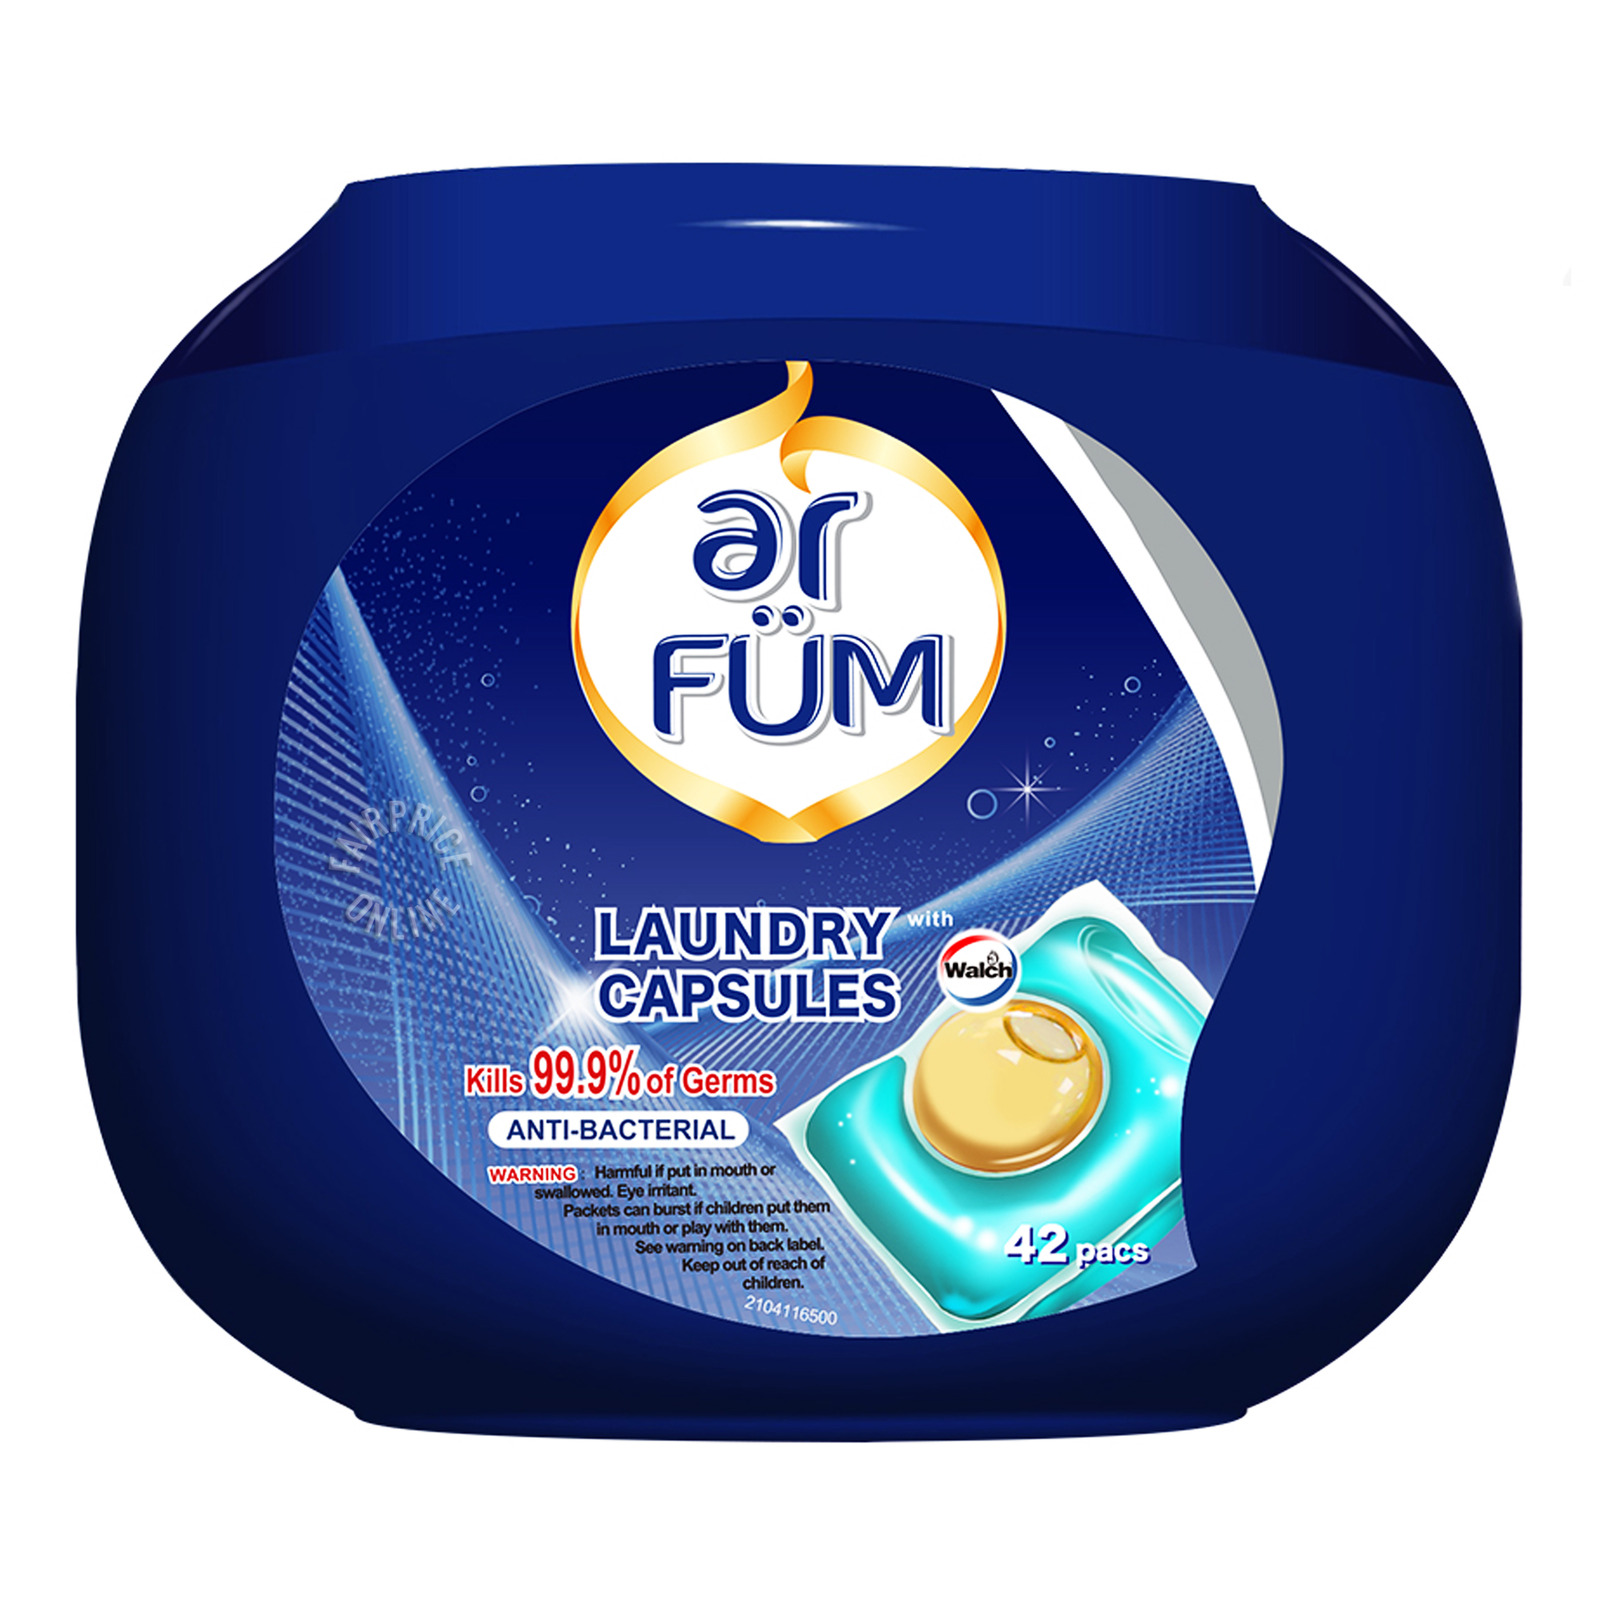 Ar Fum Anti-Bacterial Laundry Capsules